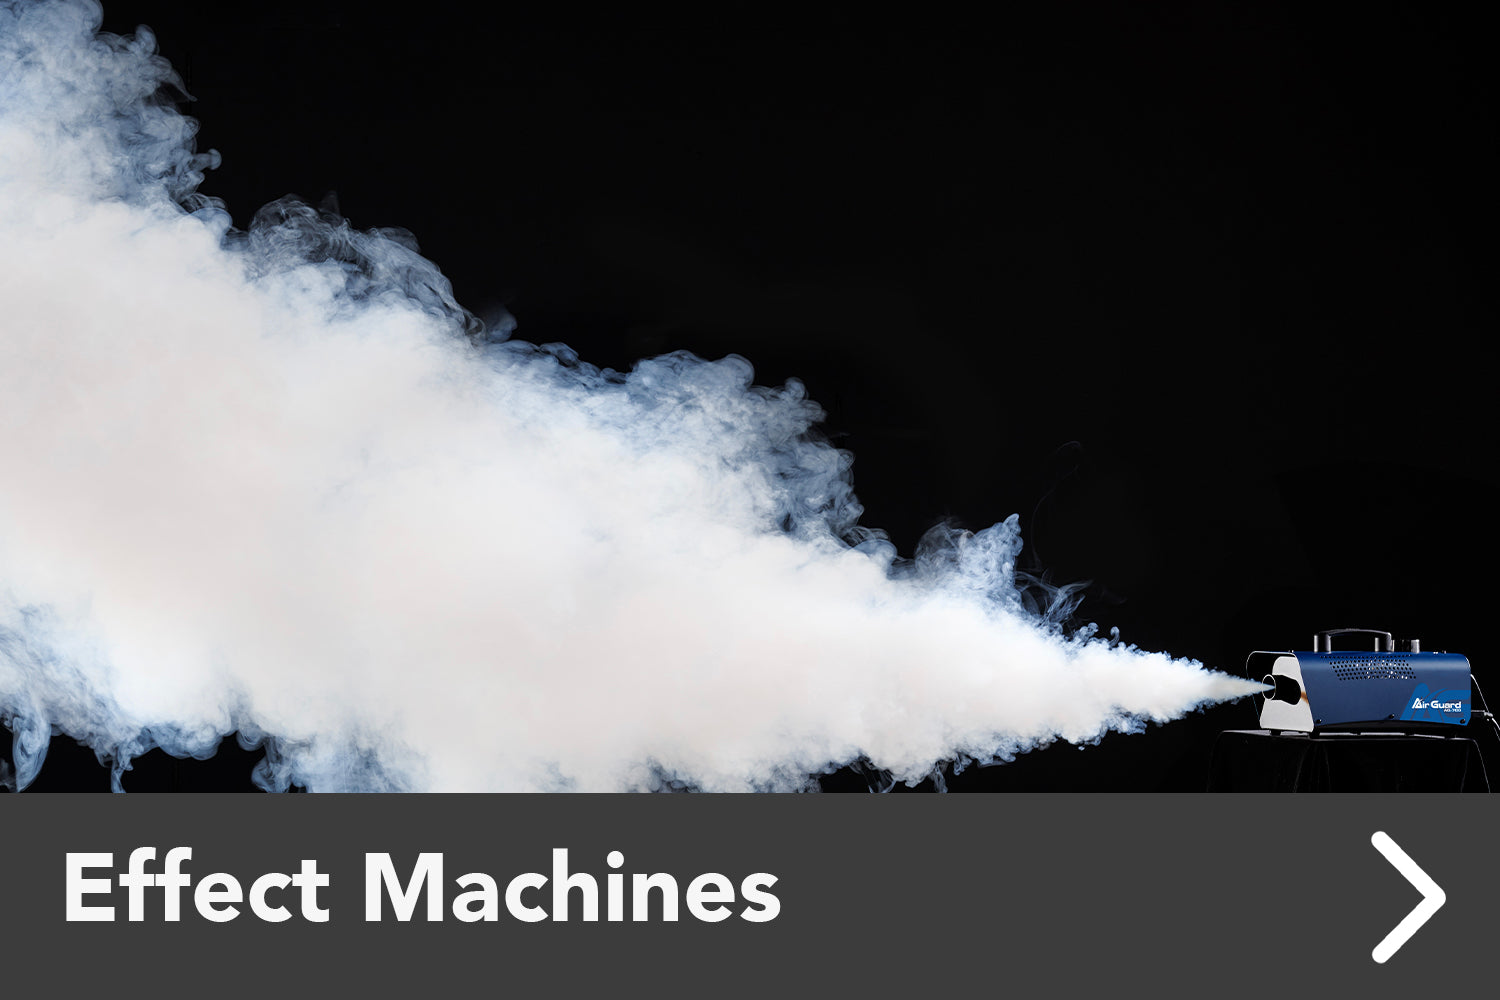 Effect Machines